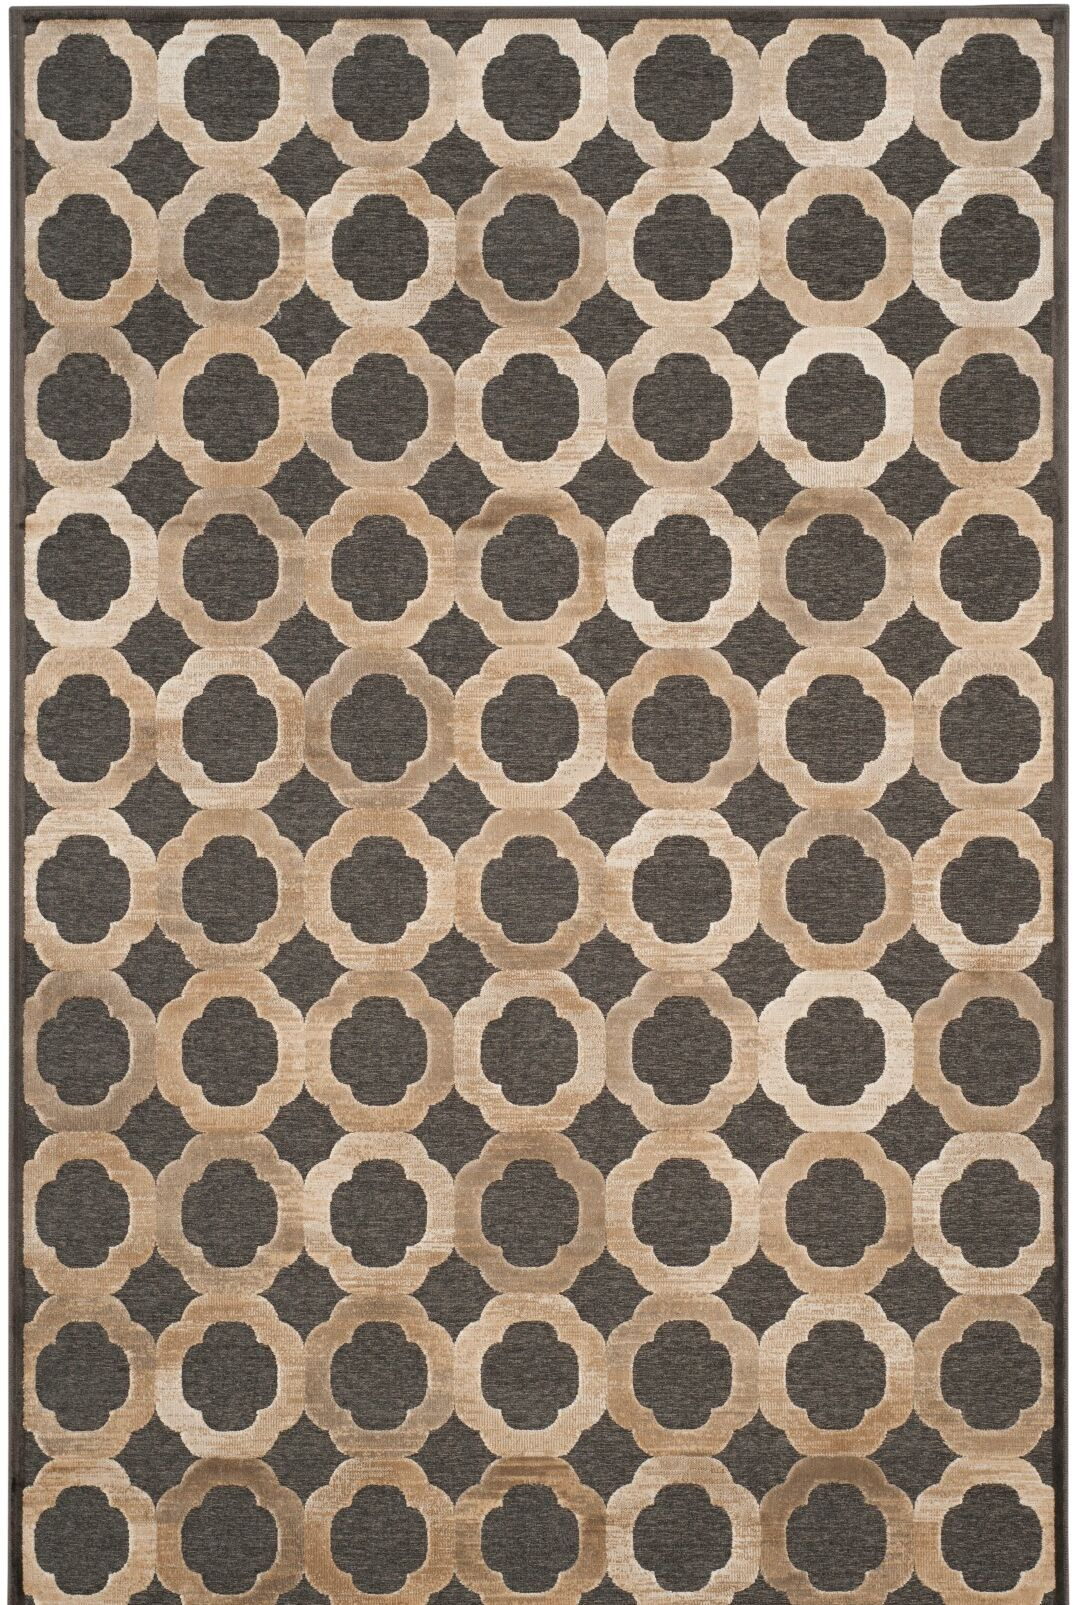 Martha Stewart Soft Anthracite / Anthracite Area Rug Rug Size: Rectangle 5'1